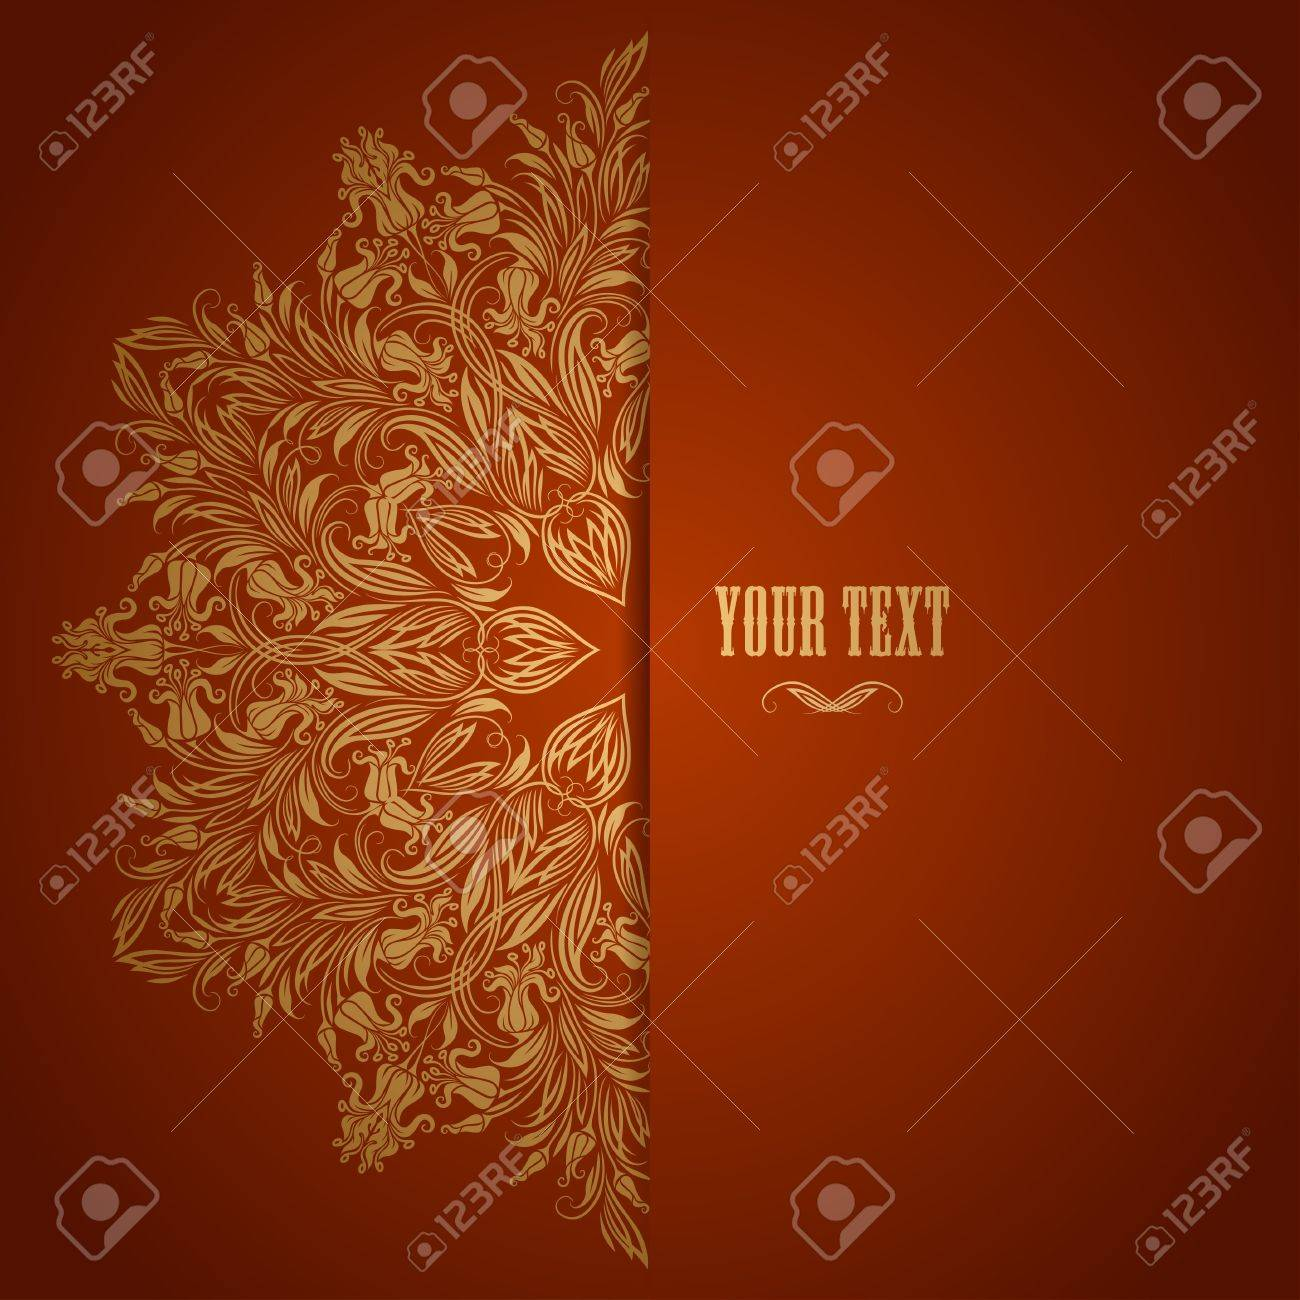 Elegant background with lace ornament and place for text  Floral elements, ornate background  Vector illustration Stock Vector - 21041814